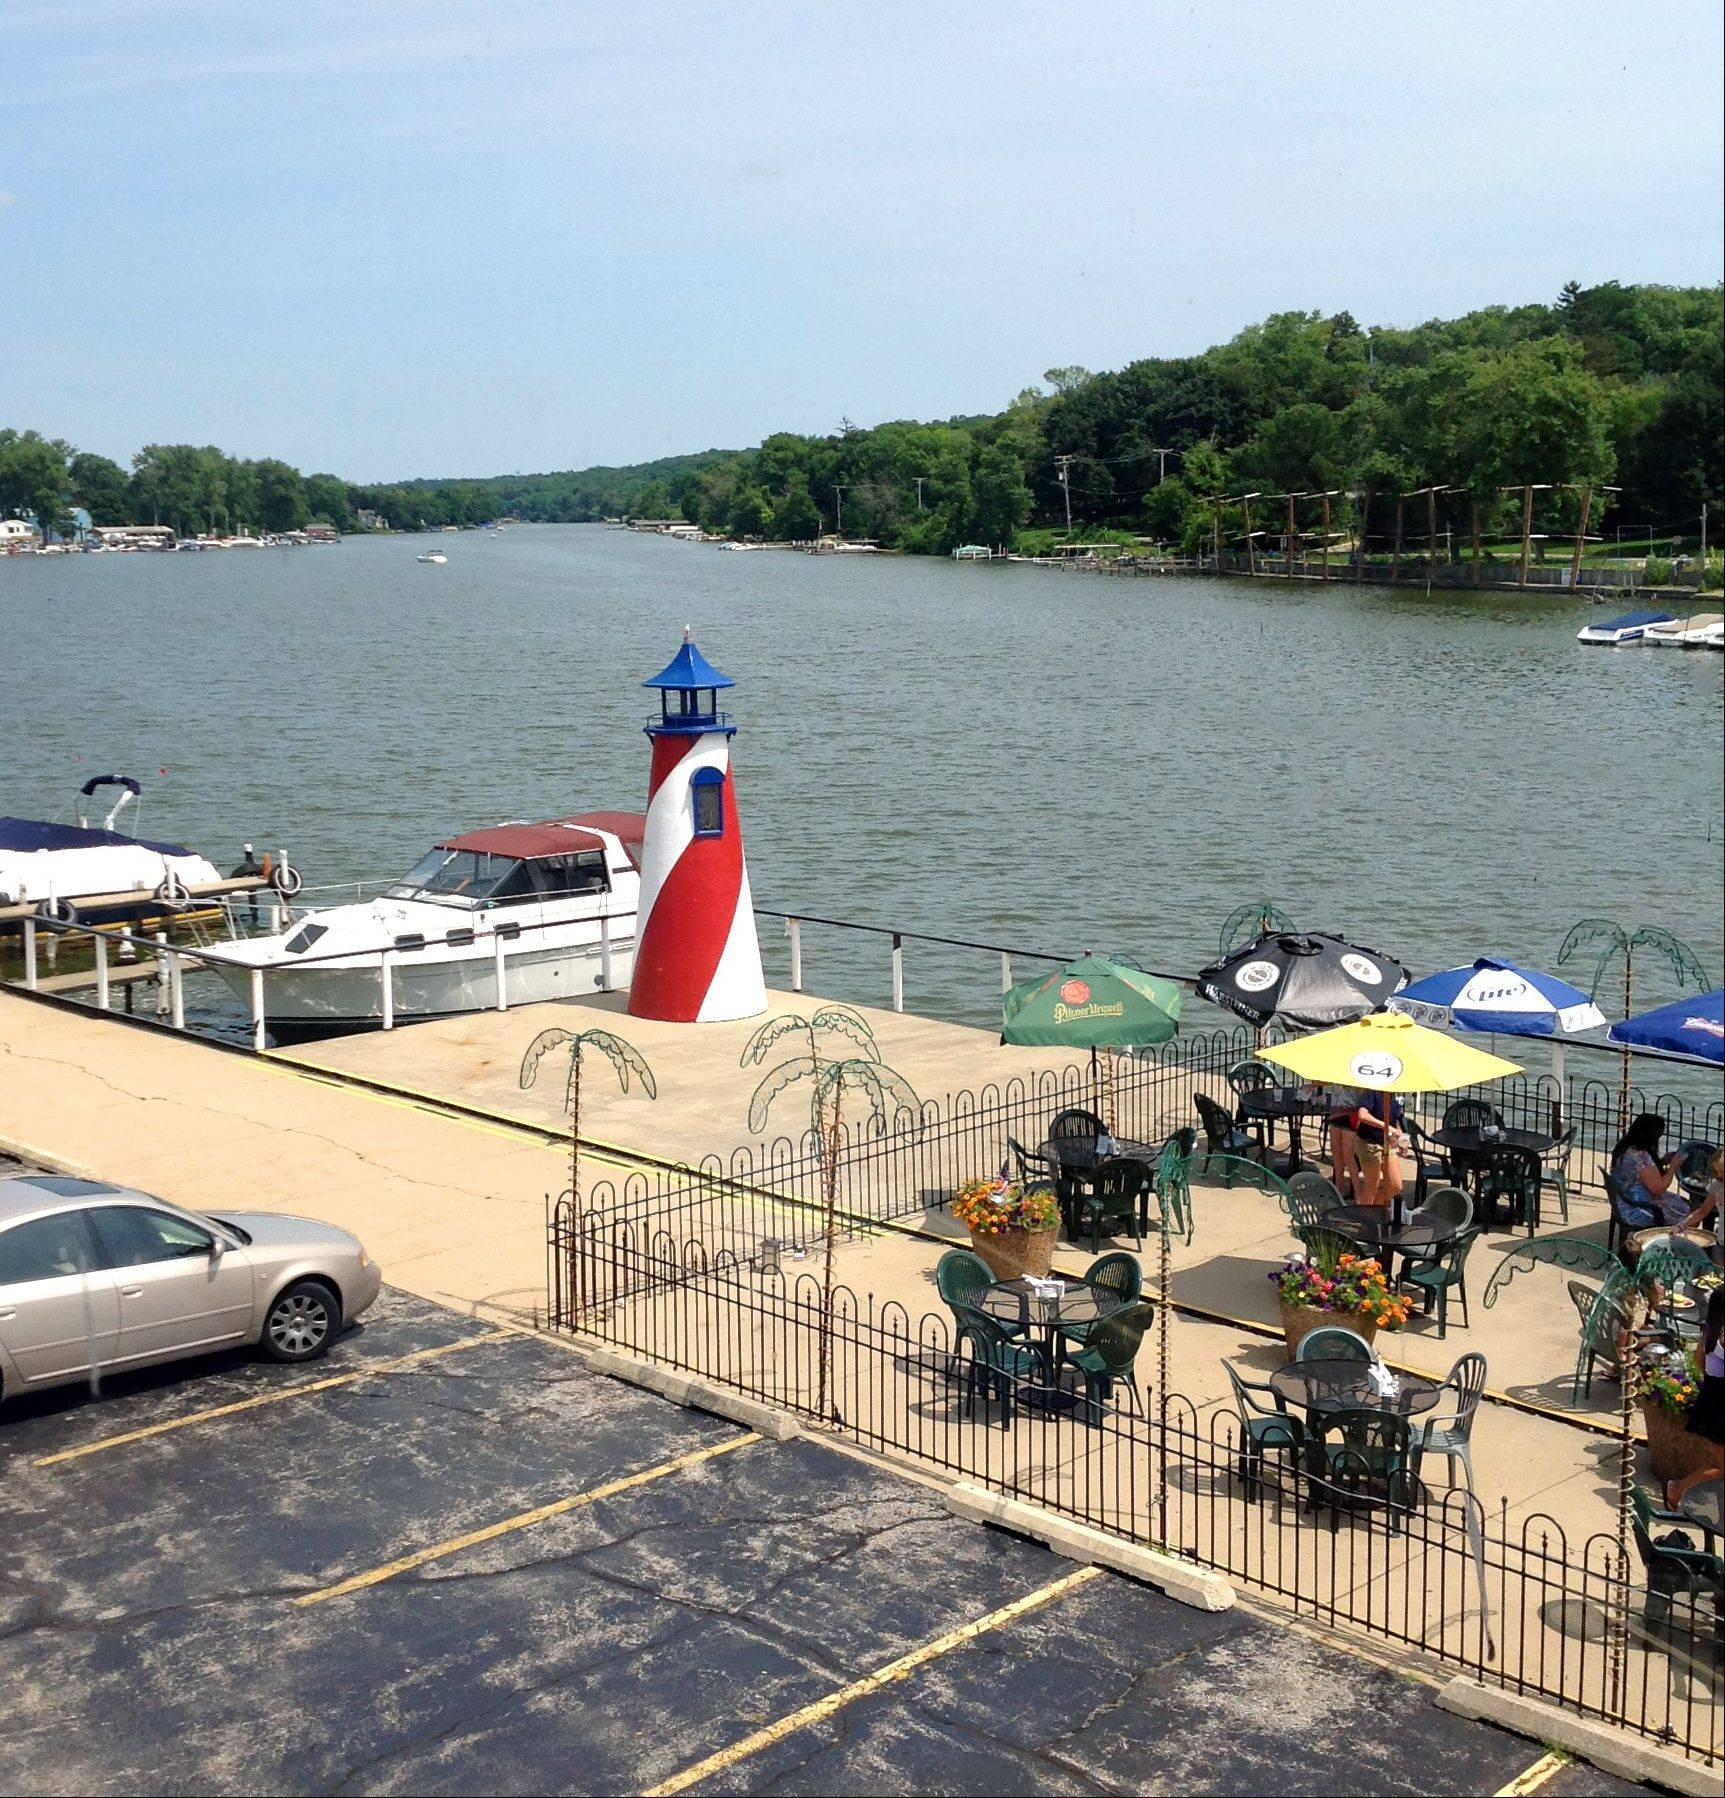 Port Edward restaurant, with its outdoor dining and motorboat access, is a focal point of Algonquin's portion of the Fox River.